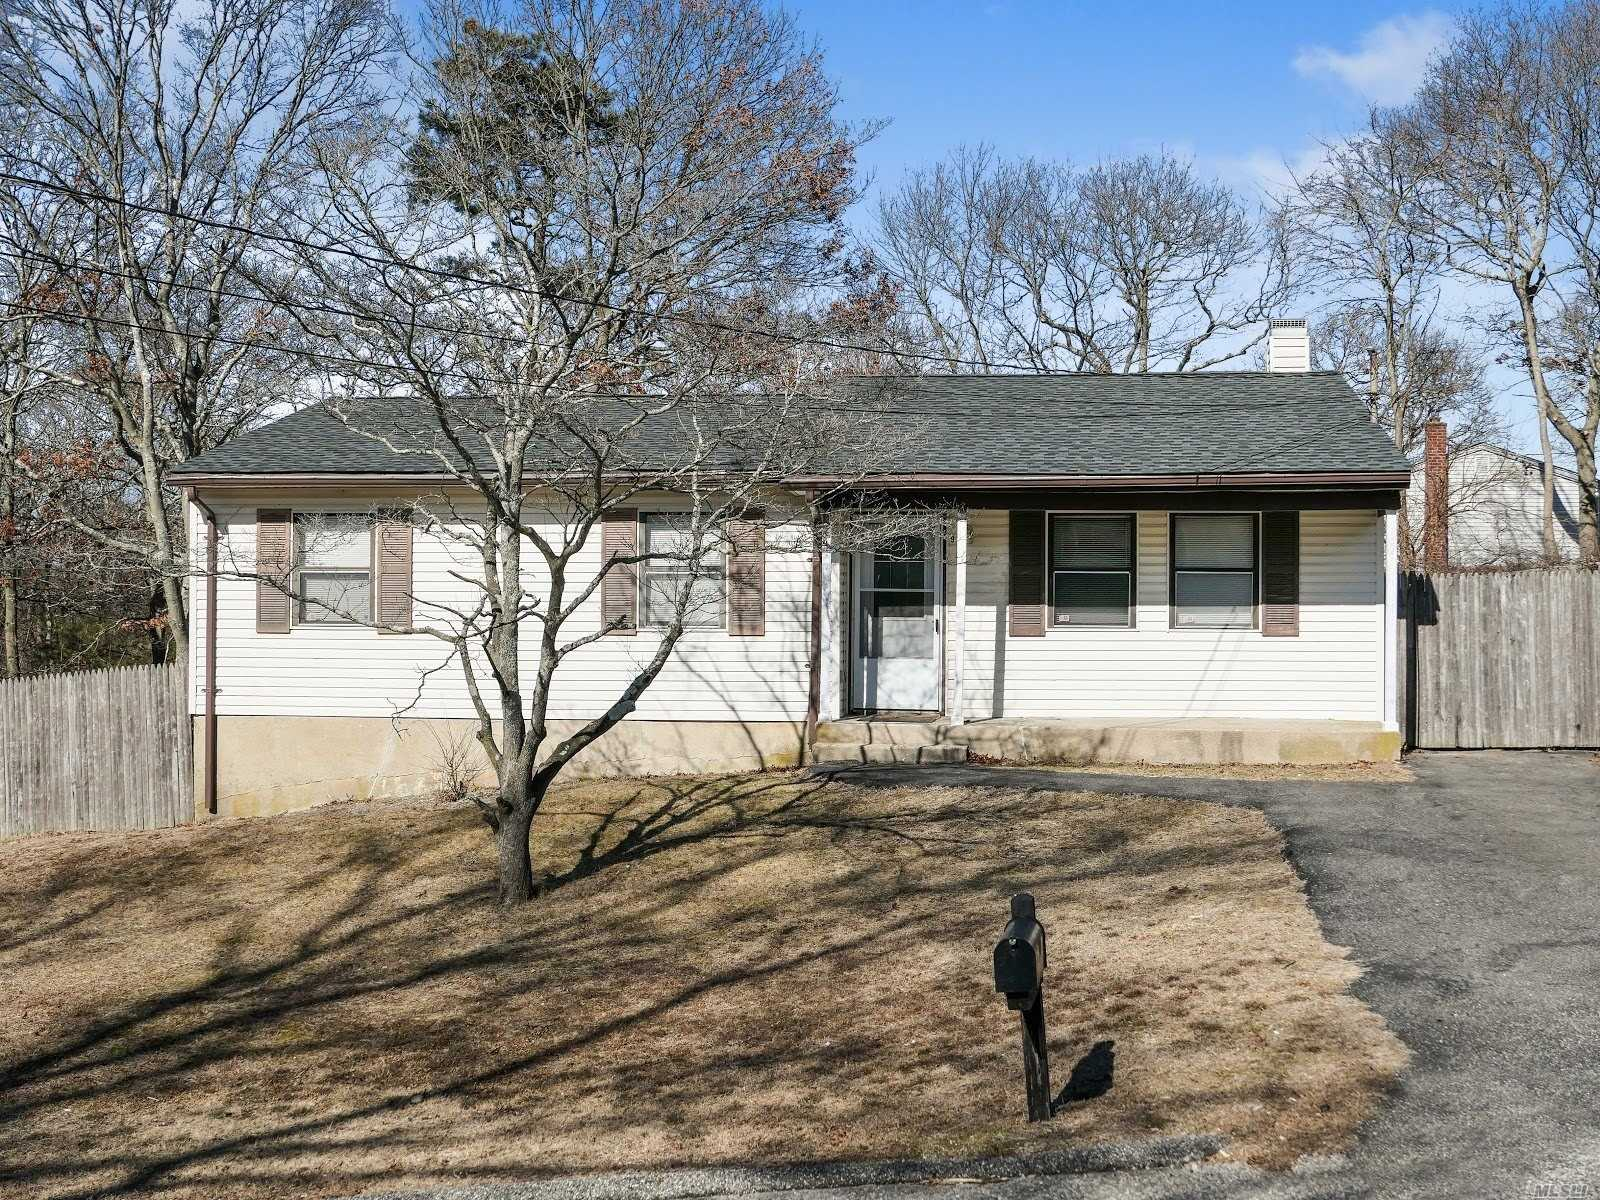 Great 3 Bedroom, One Bathroom Home With Large Livingroom And Nice Yard. Close To Lirr, Shopping, Beaches And Wertheim National Wildlife Refuge. Easy Show